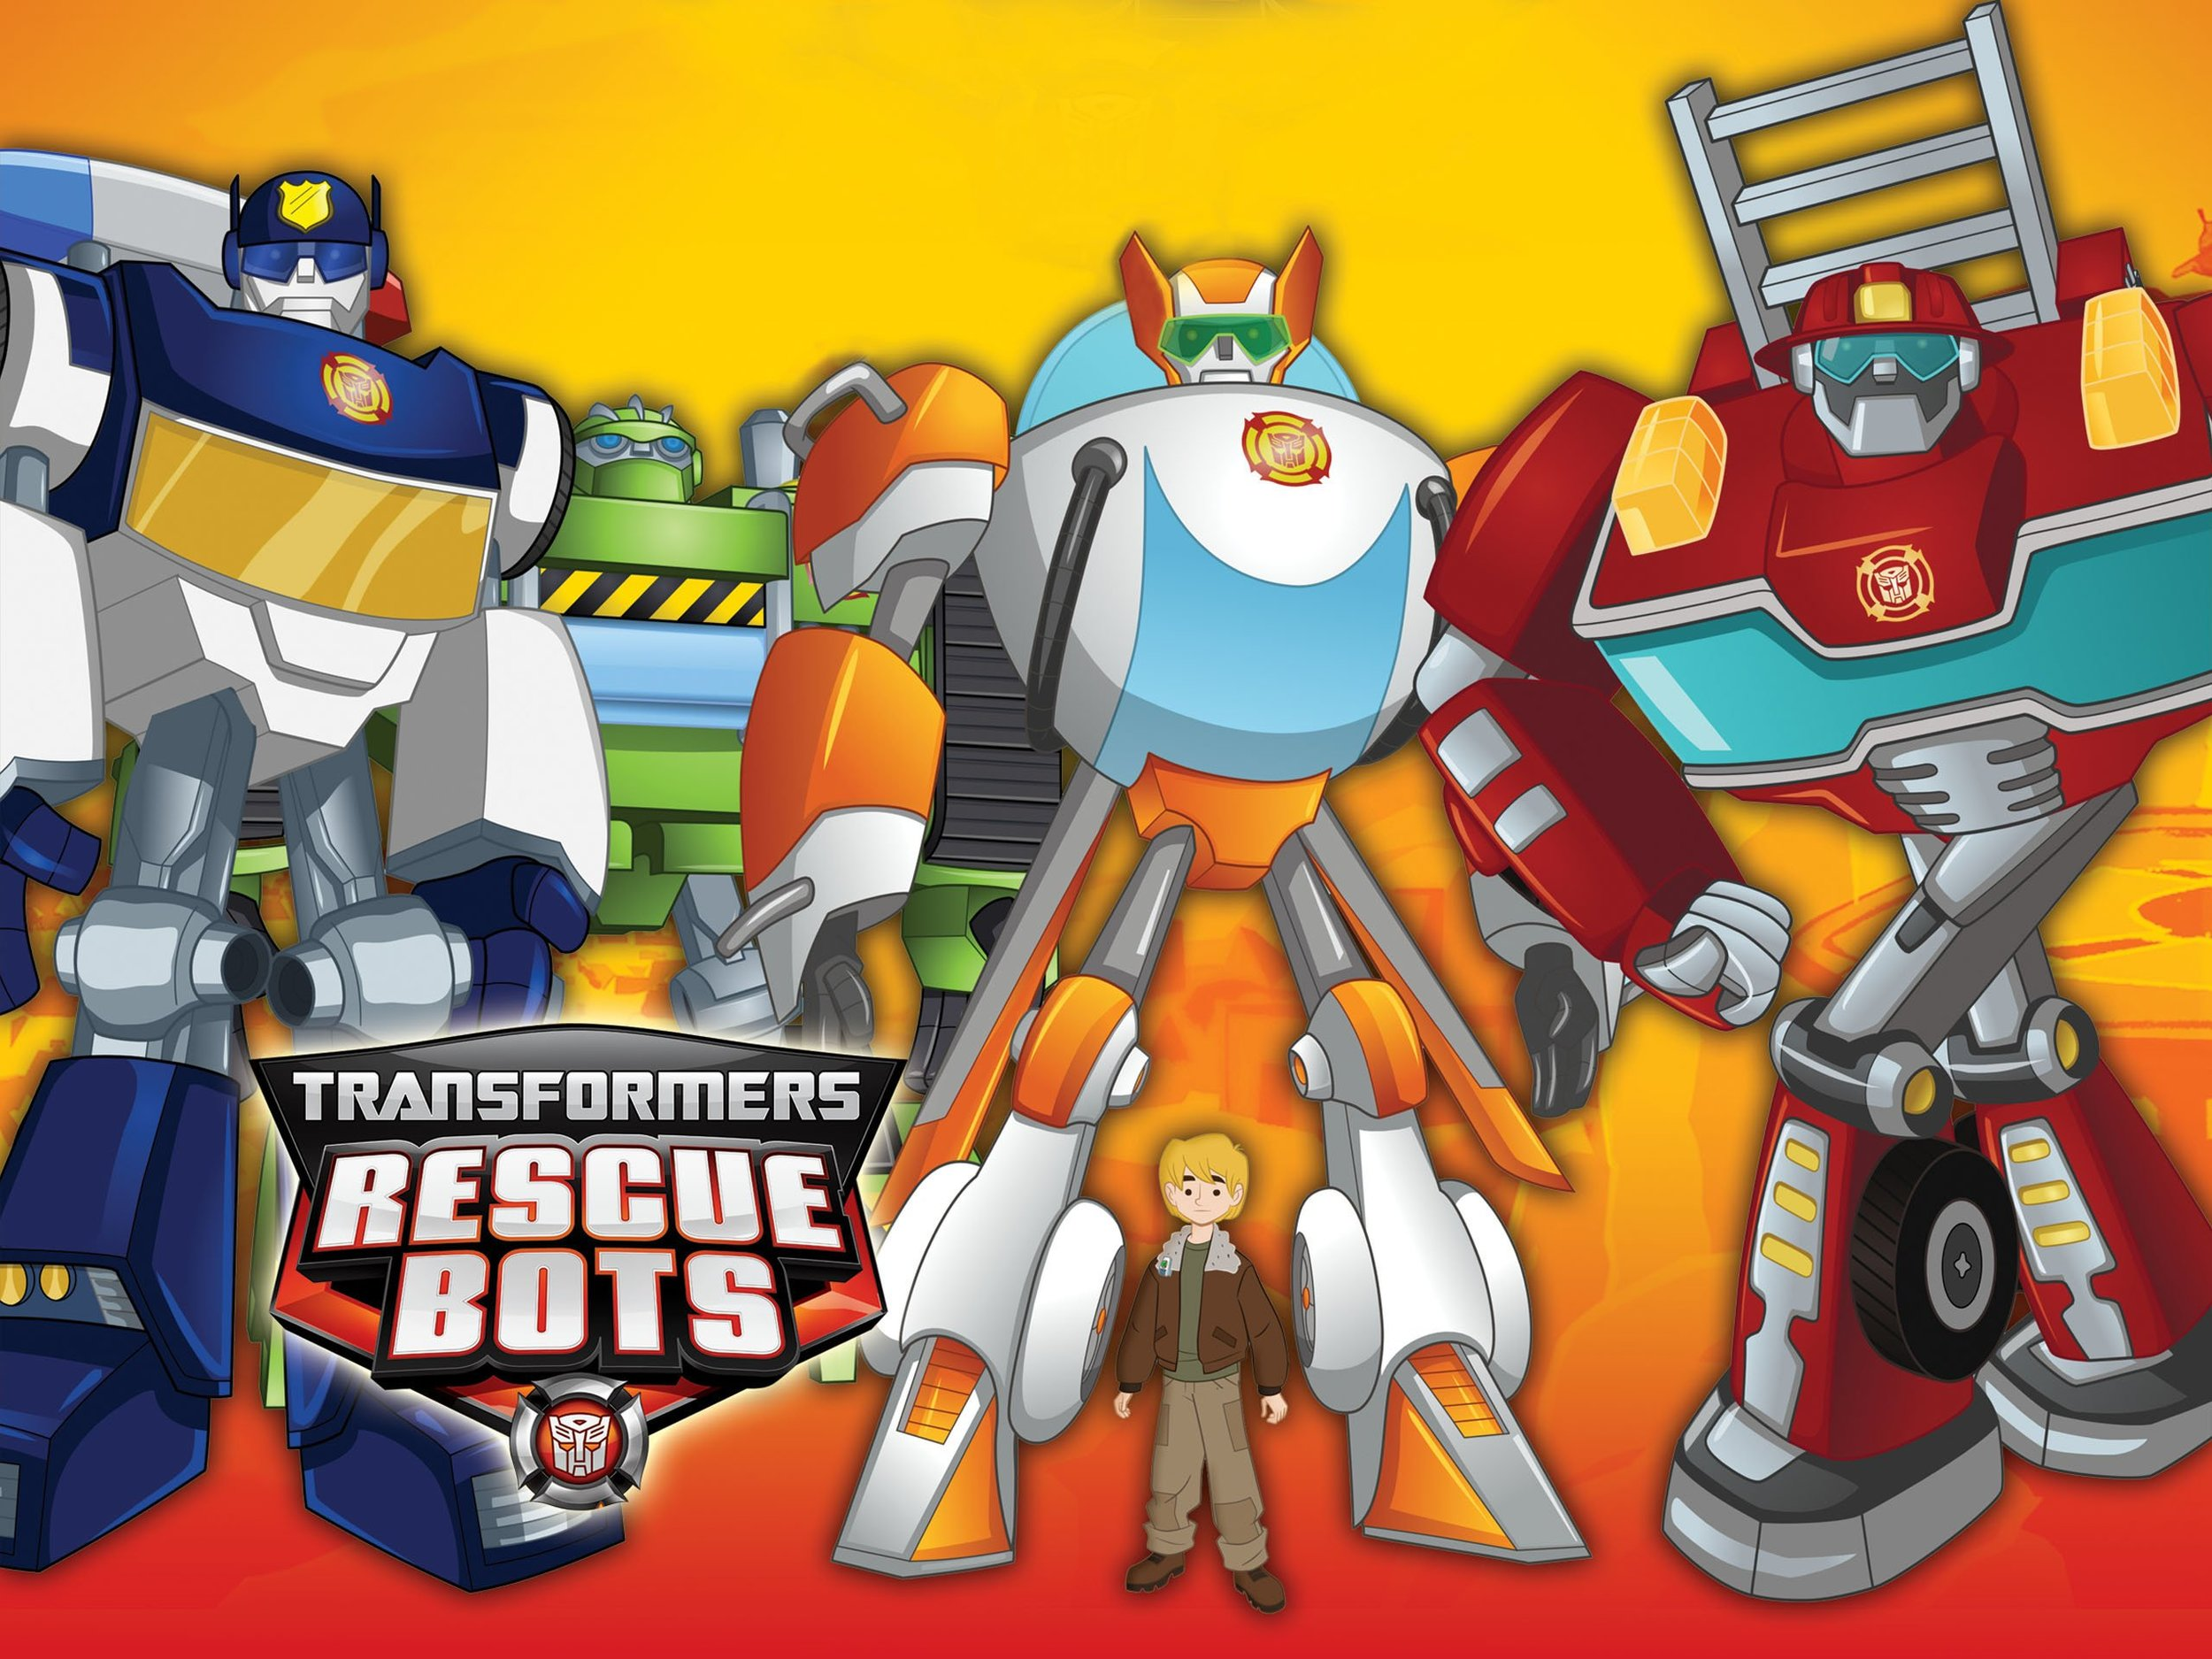 """Transformers: Rescue Bots - Score by: Starr Parodi & Jeff Eden Fair Starring Peter Cullen, LeVar Burton, Tim Curry, Diamond White, Lacey Chabert and Steve Blum. Created by Brian Hohlfeld and Nicole Dubuc, Animation Producer Therese Trujillo and Executive Producer Jeff Kline.We created all the themes and underscore for the bucolic Maine Seaport of Griffin Rock with its High Tech residents and Transformer aliens who are disguised as public service robots. We also wrote the main title music to the story told in Nicole Dubuc's descriptive prose and chose Mariana's Trench Frontman Josh Ramsayto be the voice of our main title. Congratulations to Josh on his Grammy Nomination for his work on Carly Rae Jepsons """"Call Me Maybe""""."""